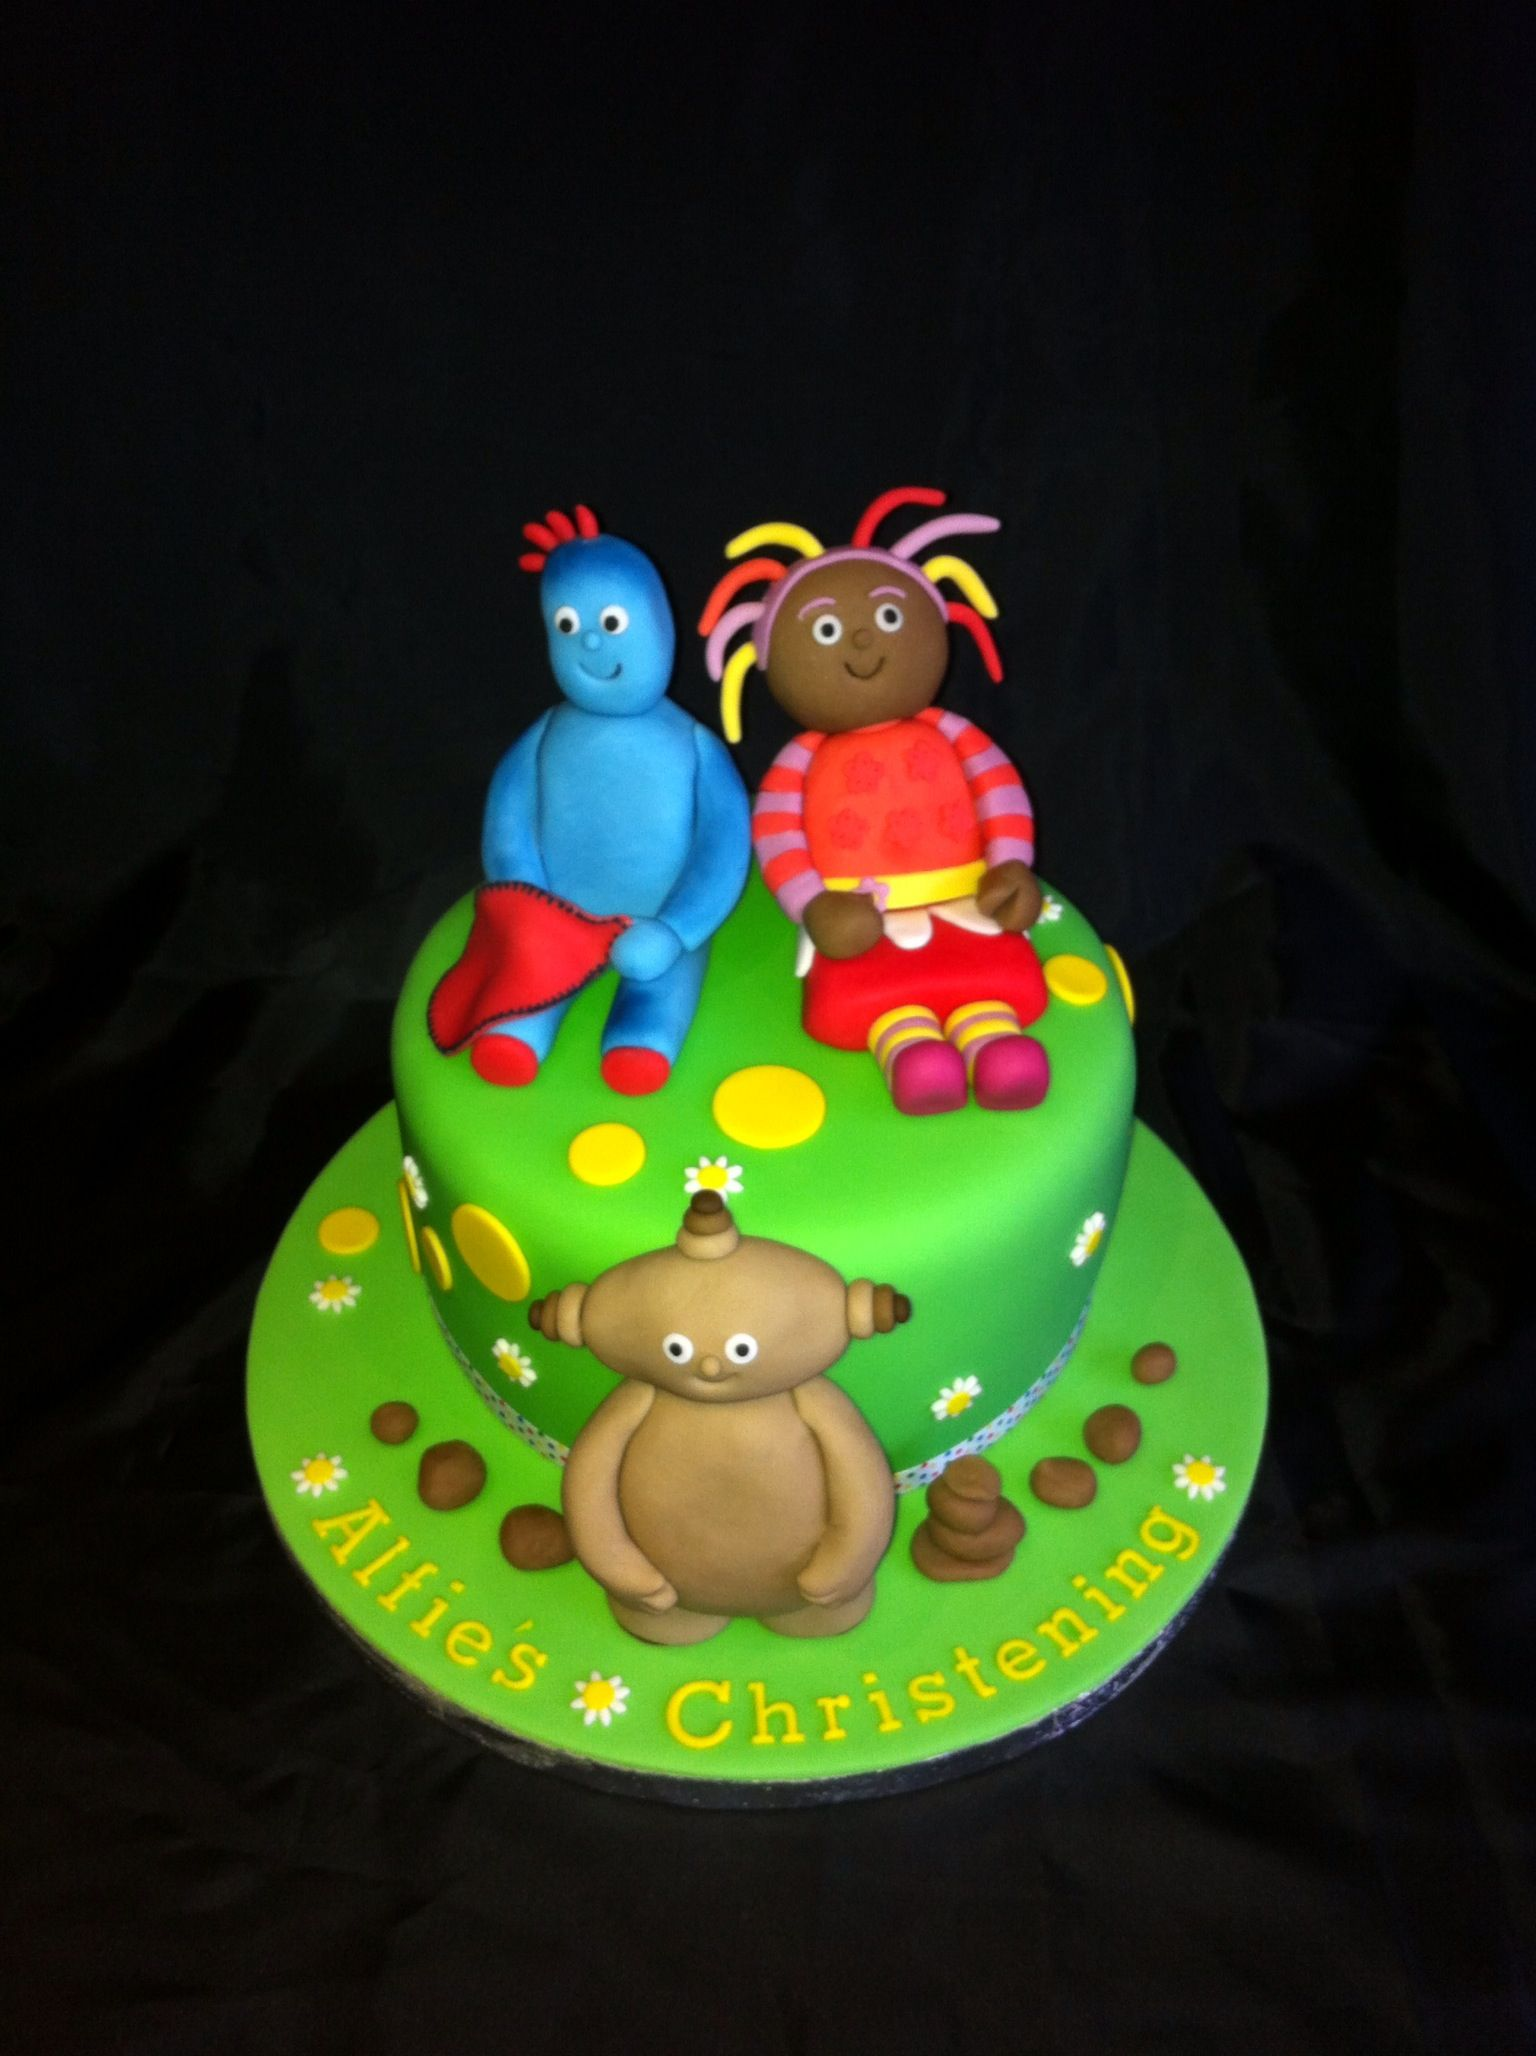 In the night garden christening cake with iggle piggle upsy daisy ...